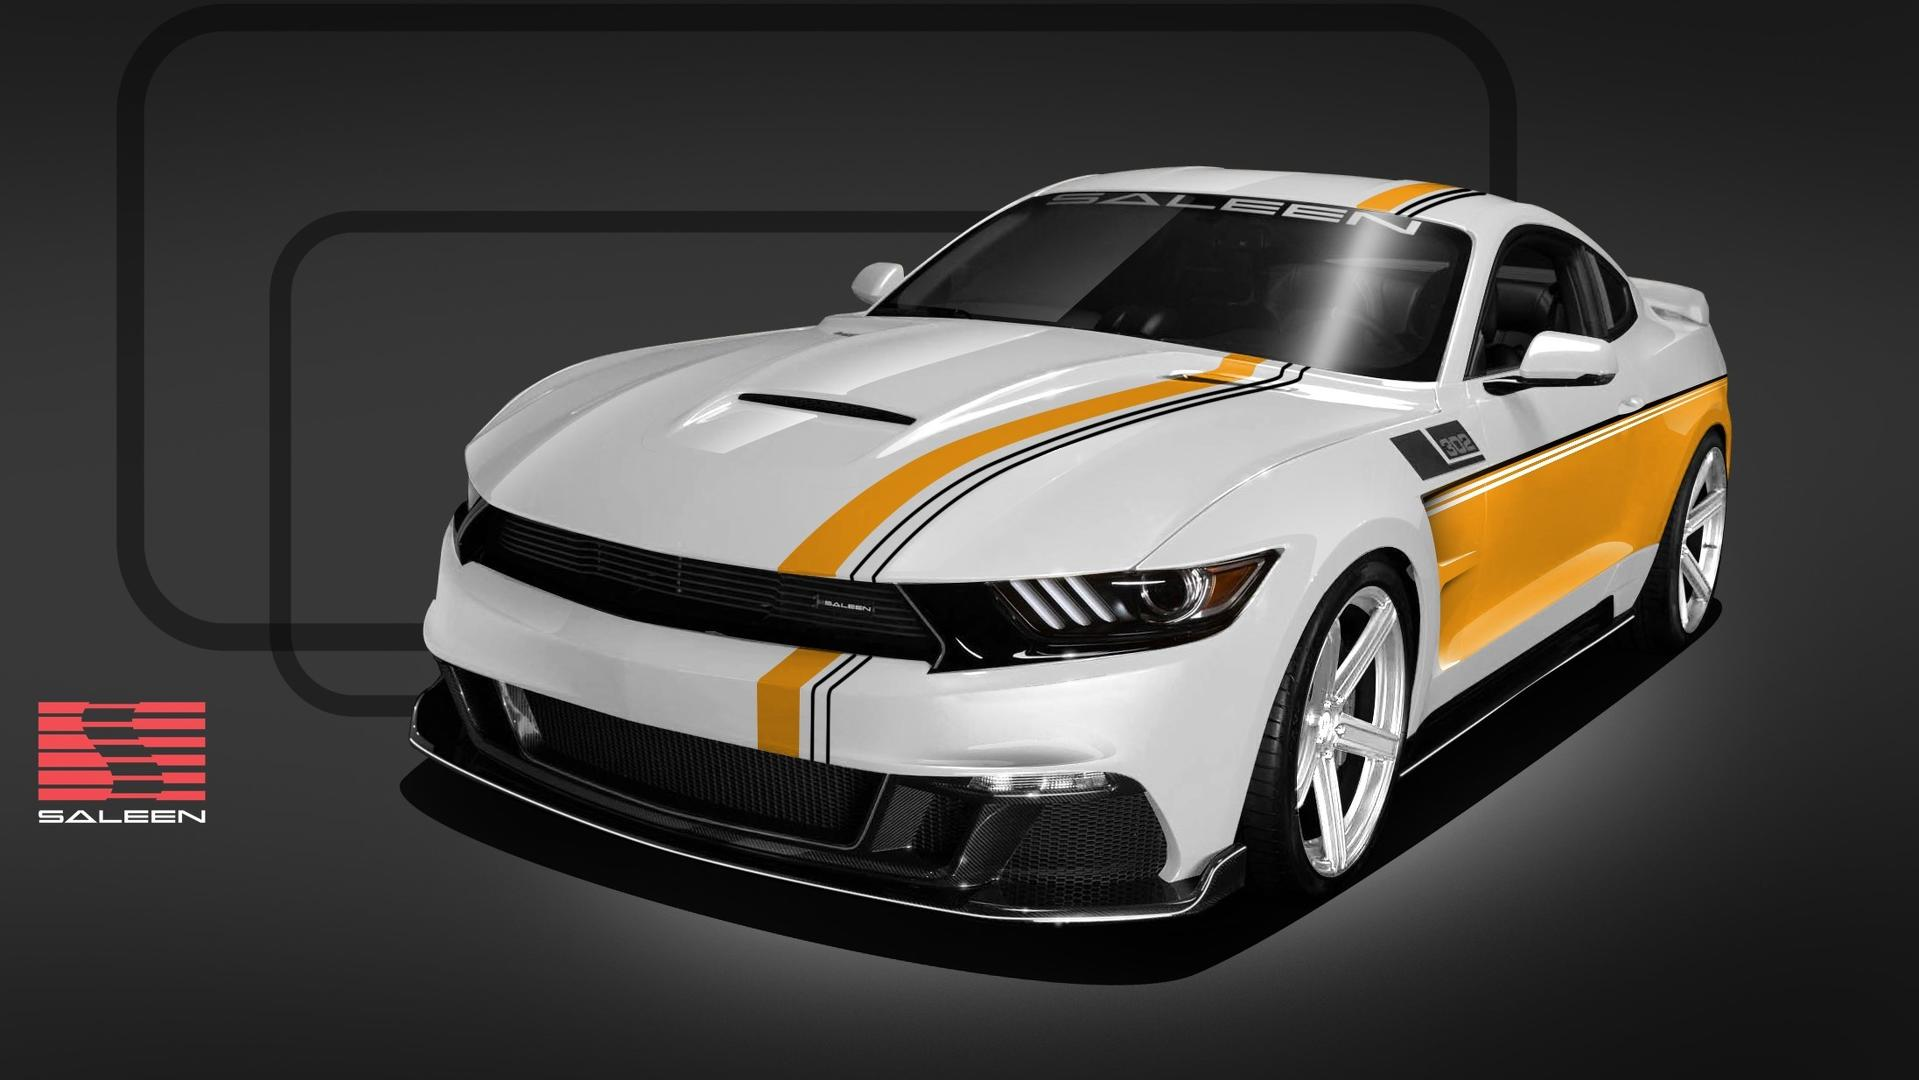 2018 saleen championship edition mustang top speed. Black Bedroom Furniture Sets. Home Design Ideas